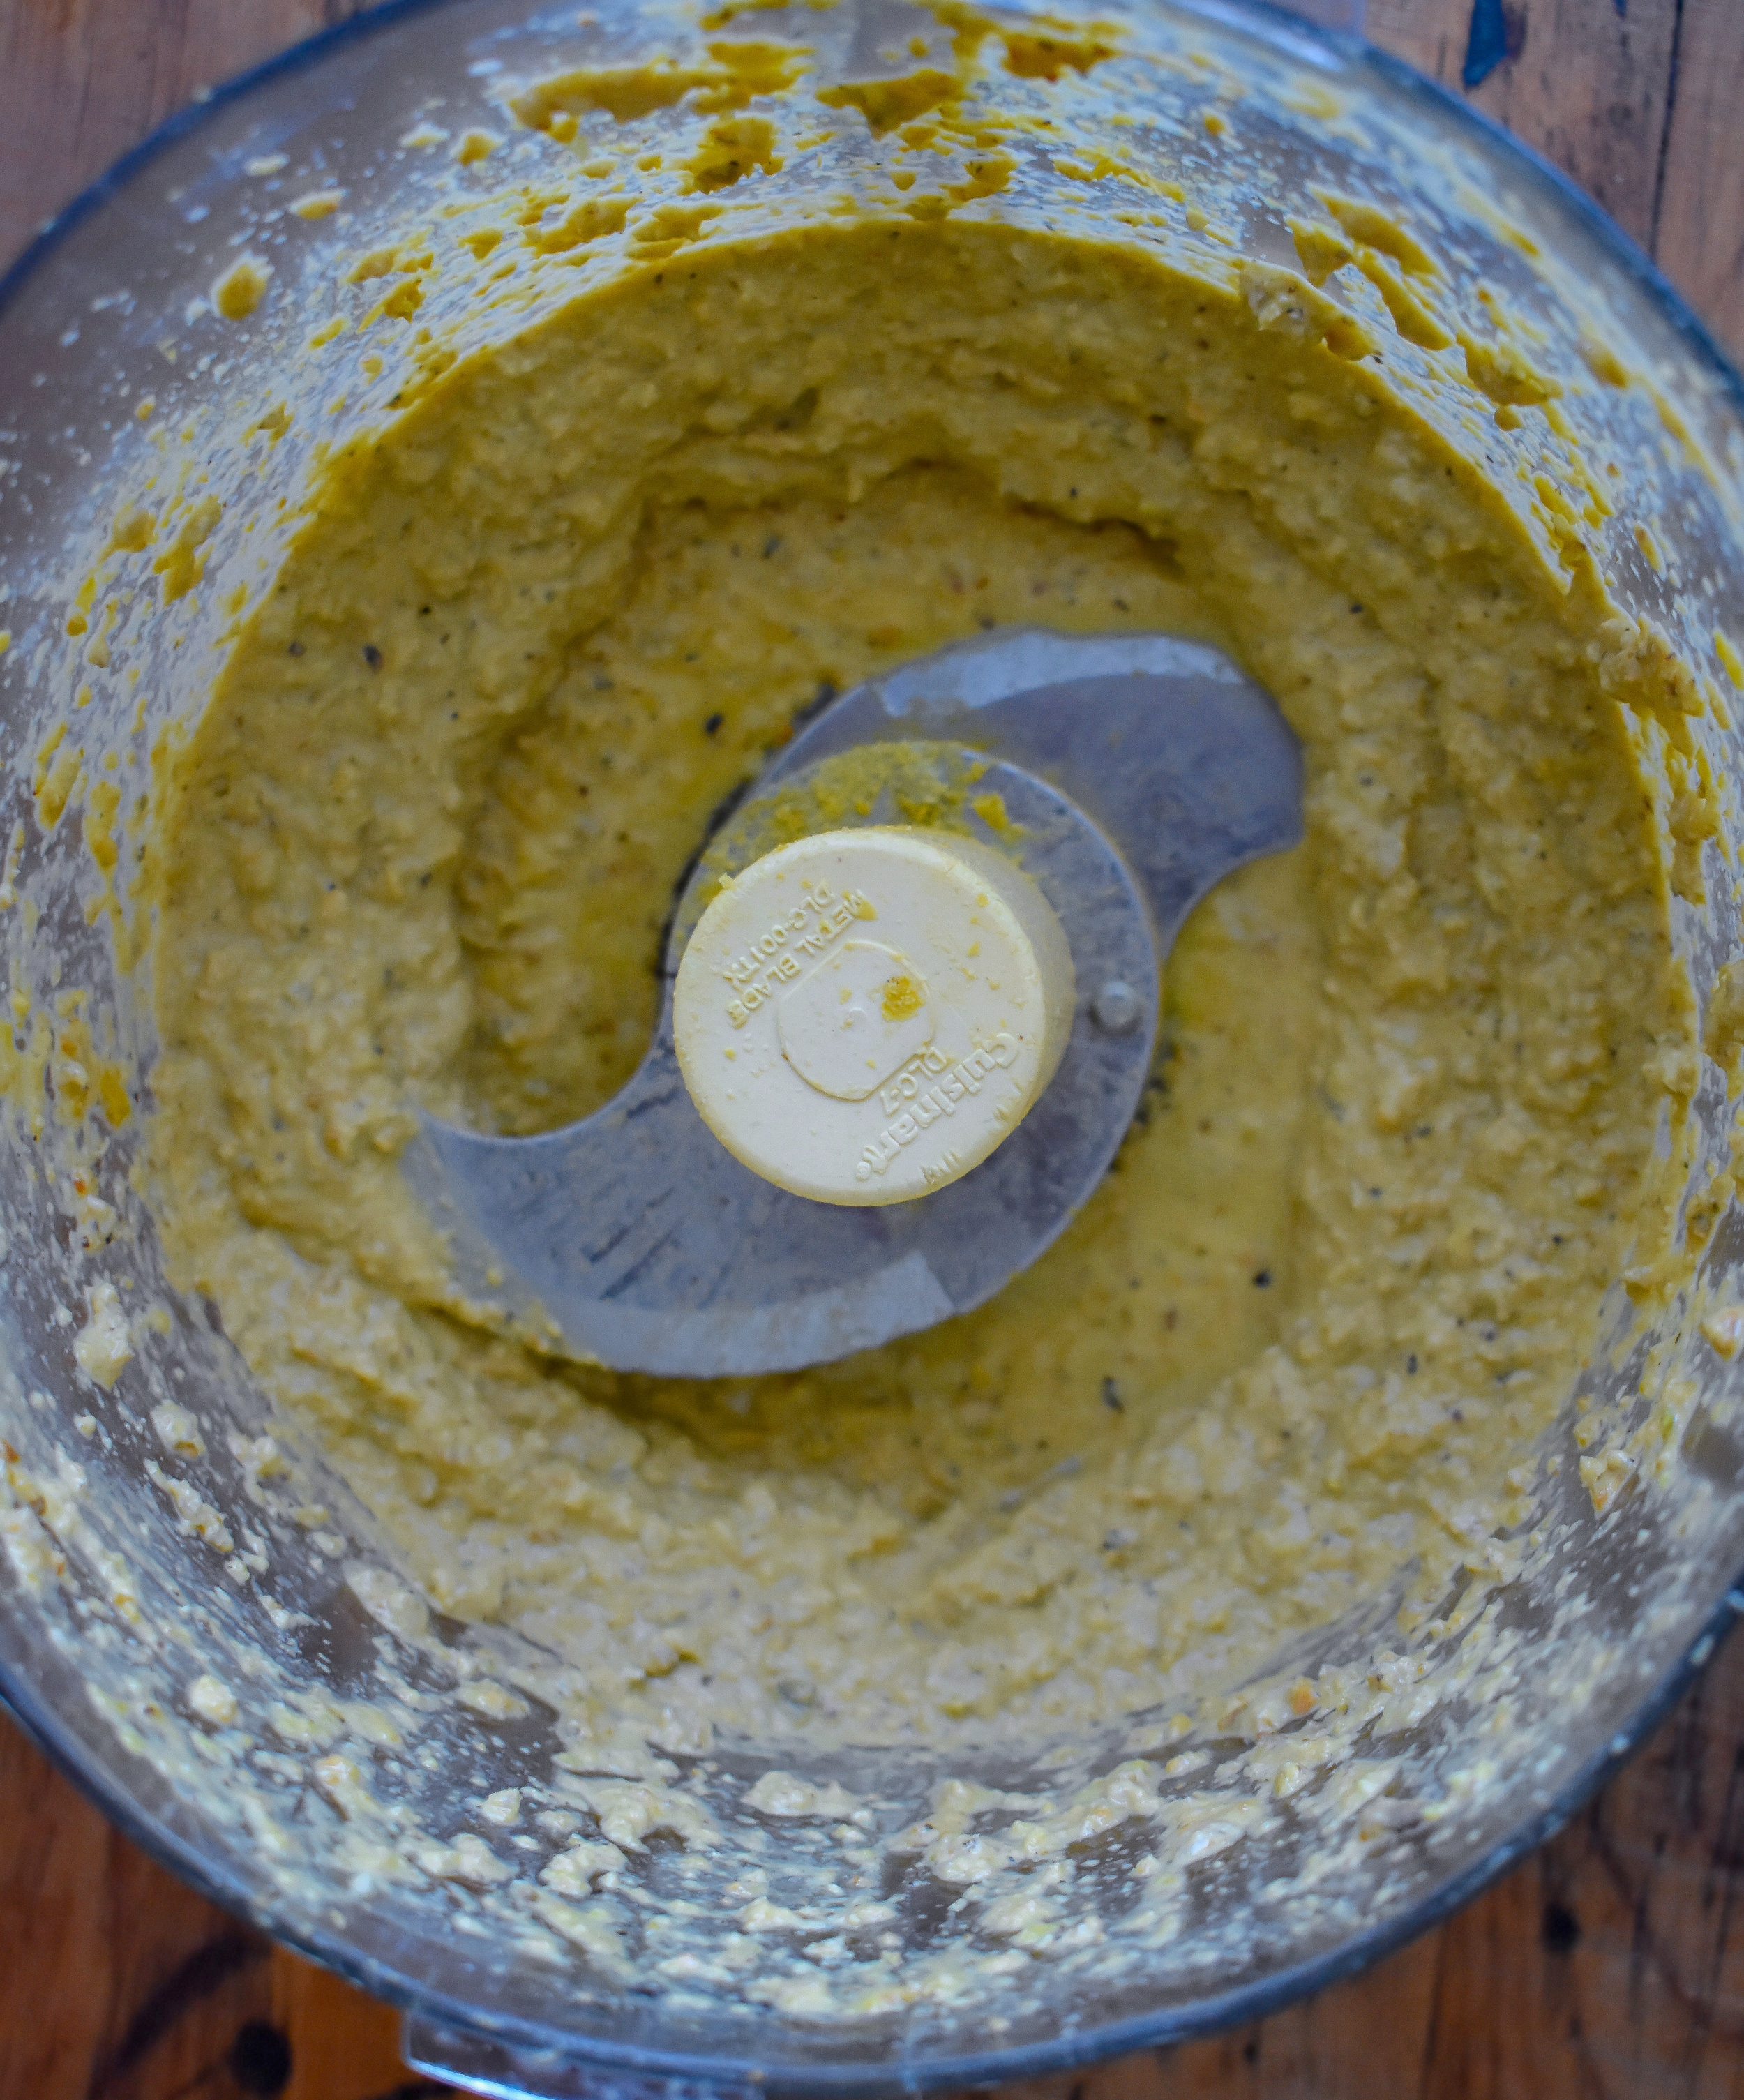 5. For the pistachio cheese sauce, add all the ingredients to a food processor and blend for 10-15 seconds. Scrape down sides + repeat process until well blended. If too thick, add more water/vegetable broth.